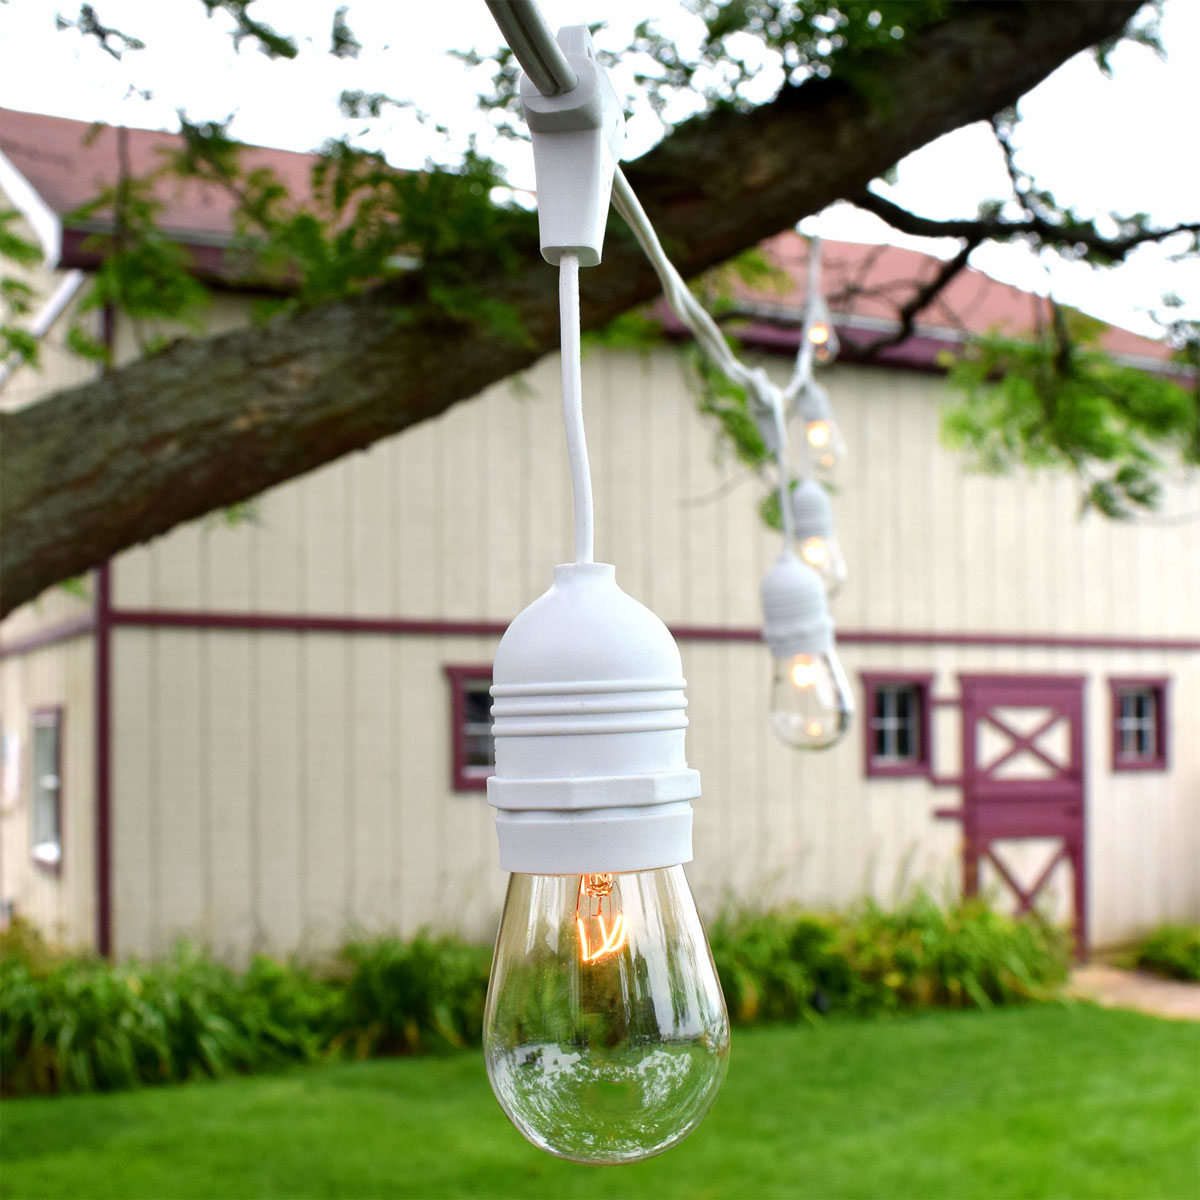 Outdoor patio string lights 54 white suspended 54 patio string lights s14 clear glass bulbs white suspended aloadofball Images